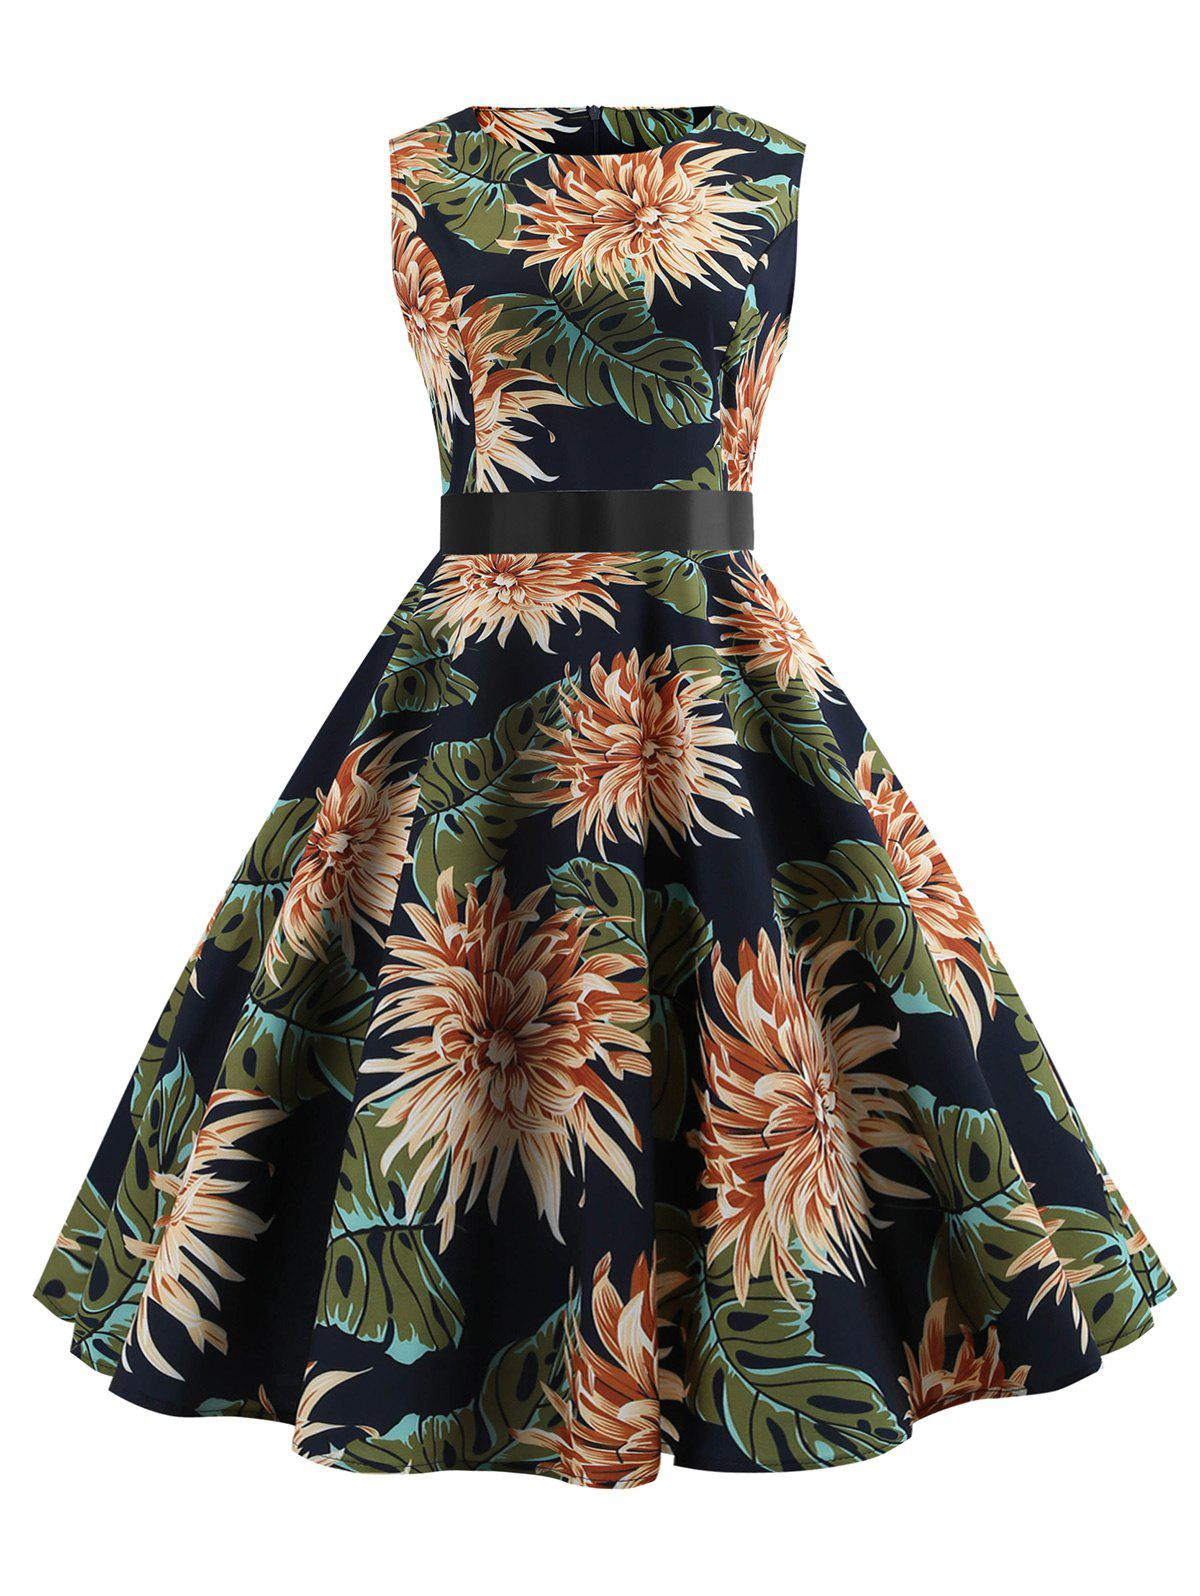 Store Flower Sleeveless Belted Vintage Dress